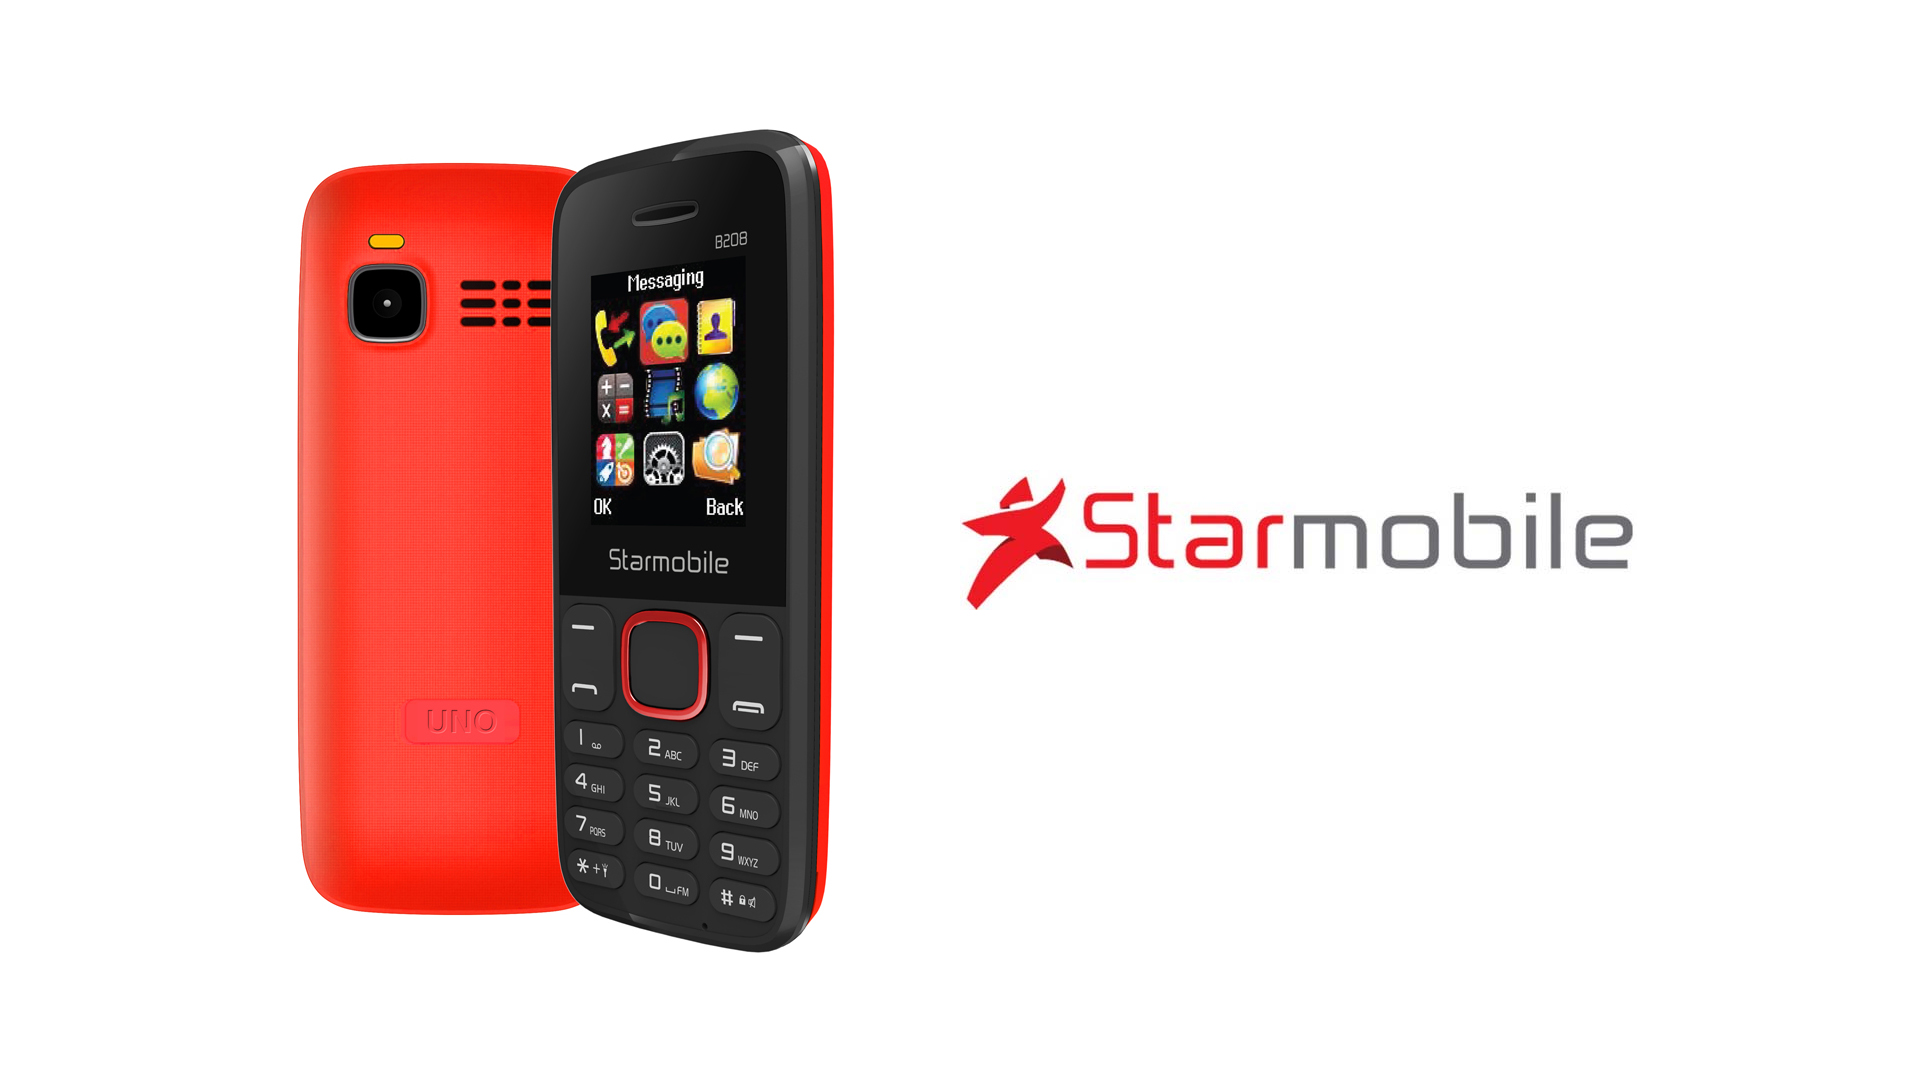 Starmobile - 900 sari-sari stores in PH now sell Starmobile phones